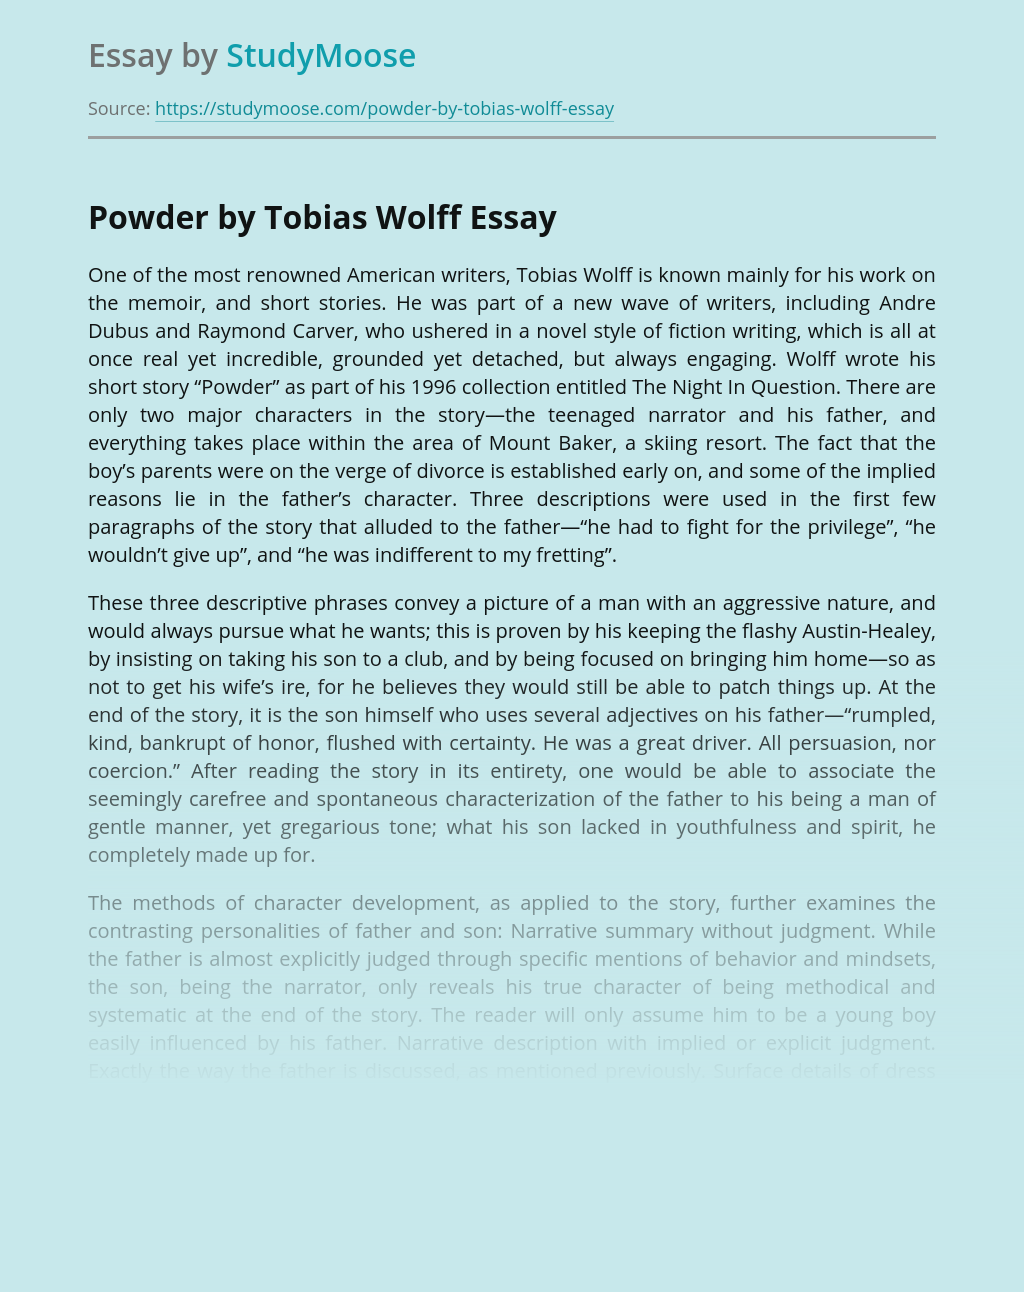 A Short Story Powder by Tobias Wolff